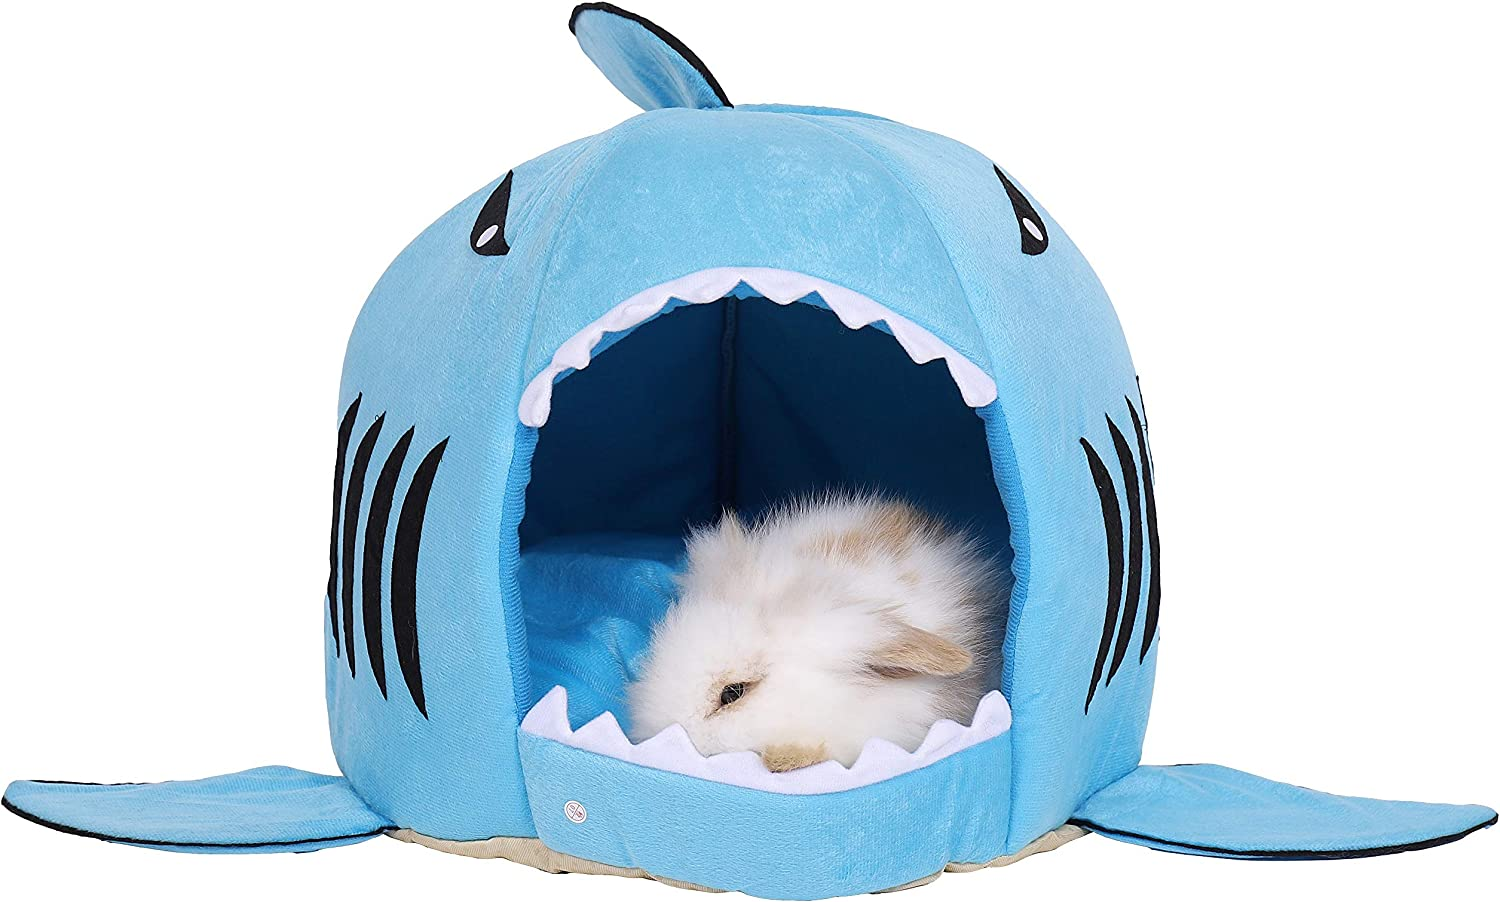 Spring Fever Hamster Guinea Pig Rabbit Dog Cat Chinchilla Hedgehog Small Animal Pet Bed Fleece Cushion Shark House Hideout Cage Accessorie